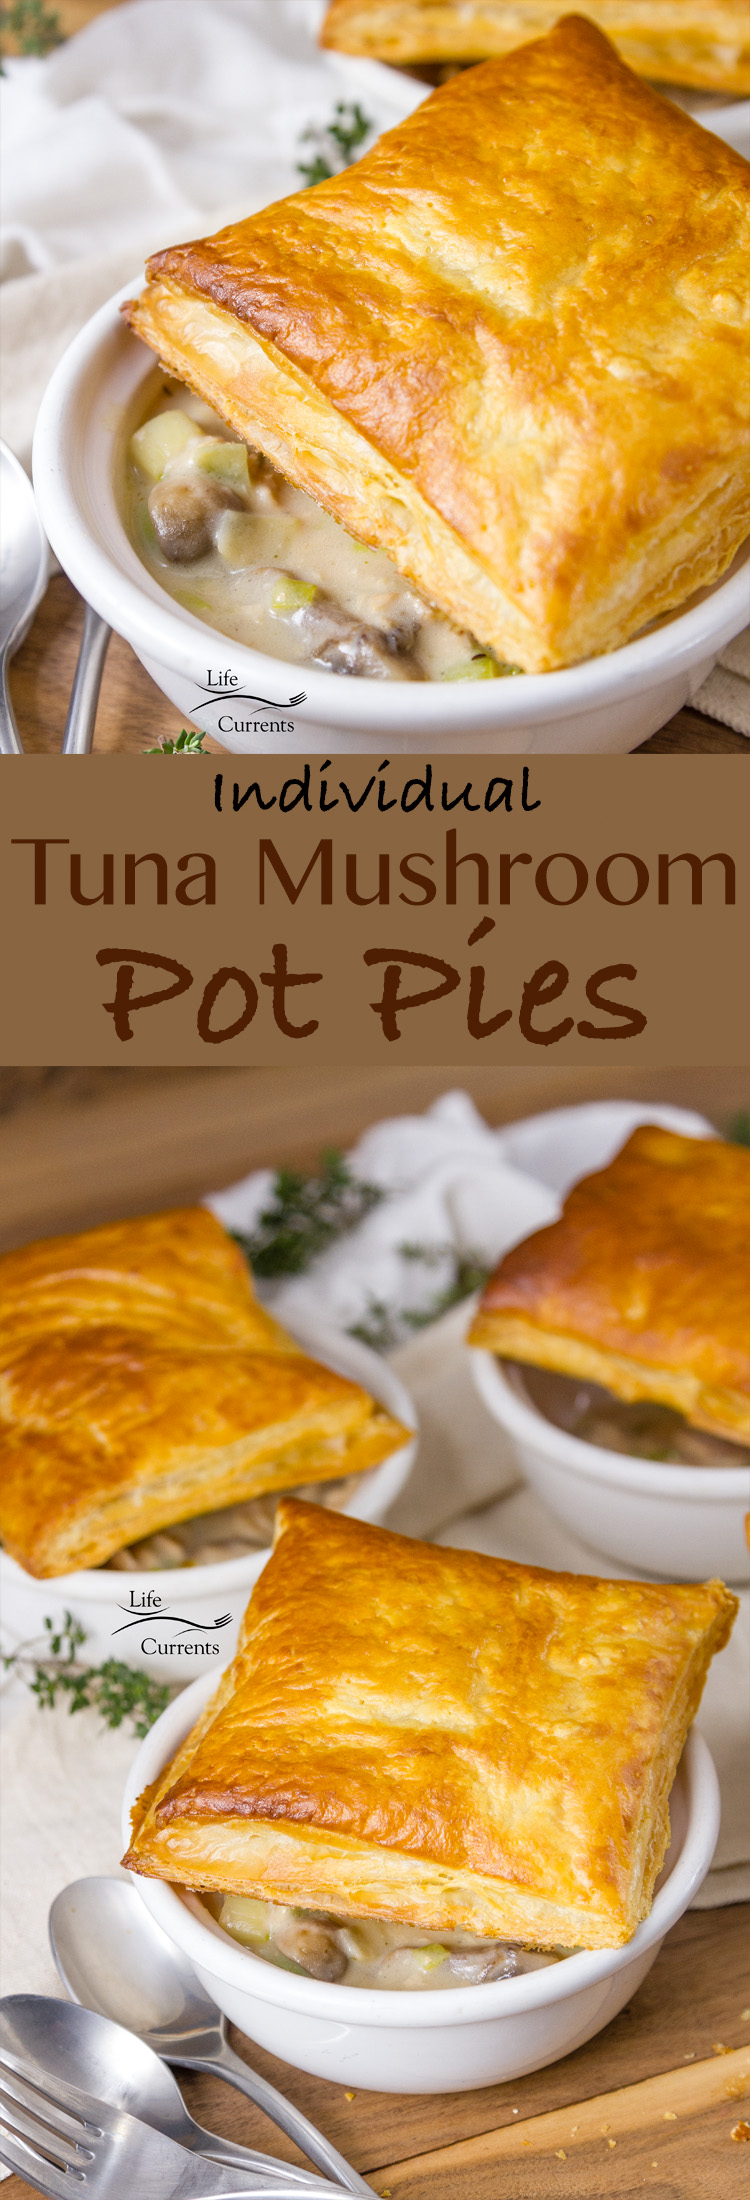 These Individual Tuna Mushroom Pot Pies made with Island Trollers Albacore Tuna are so much fun and super yummy. #ad